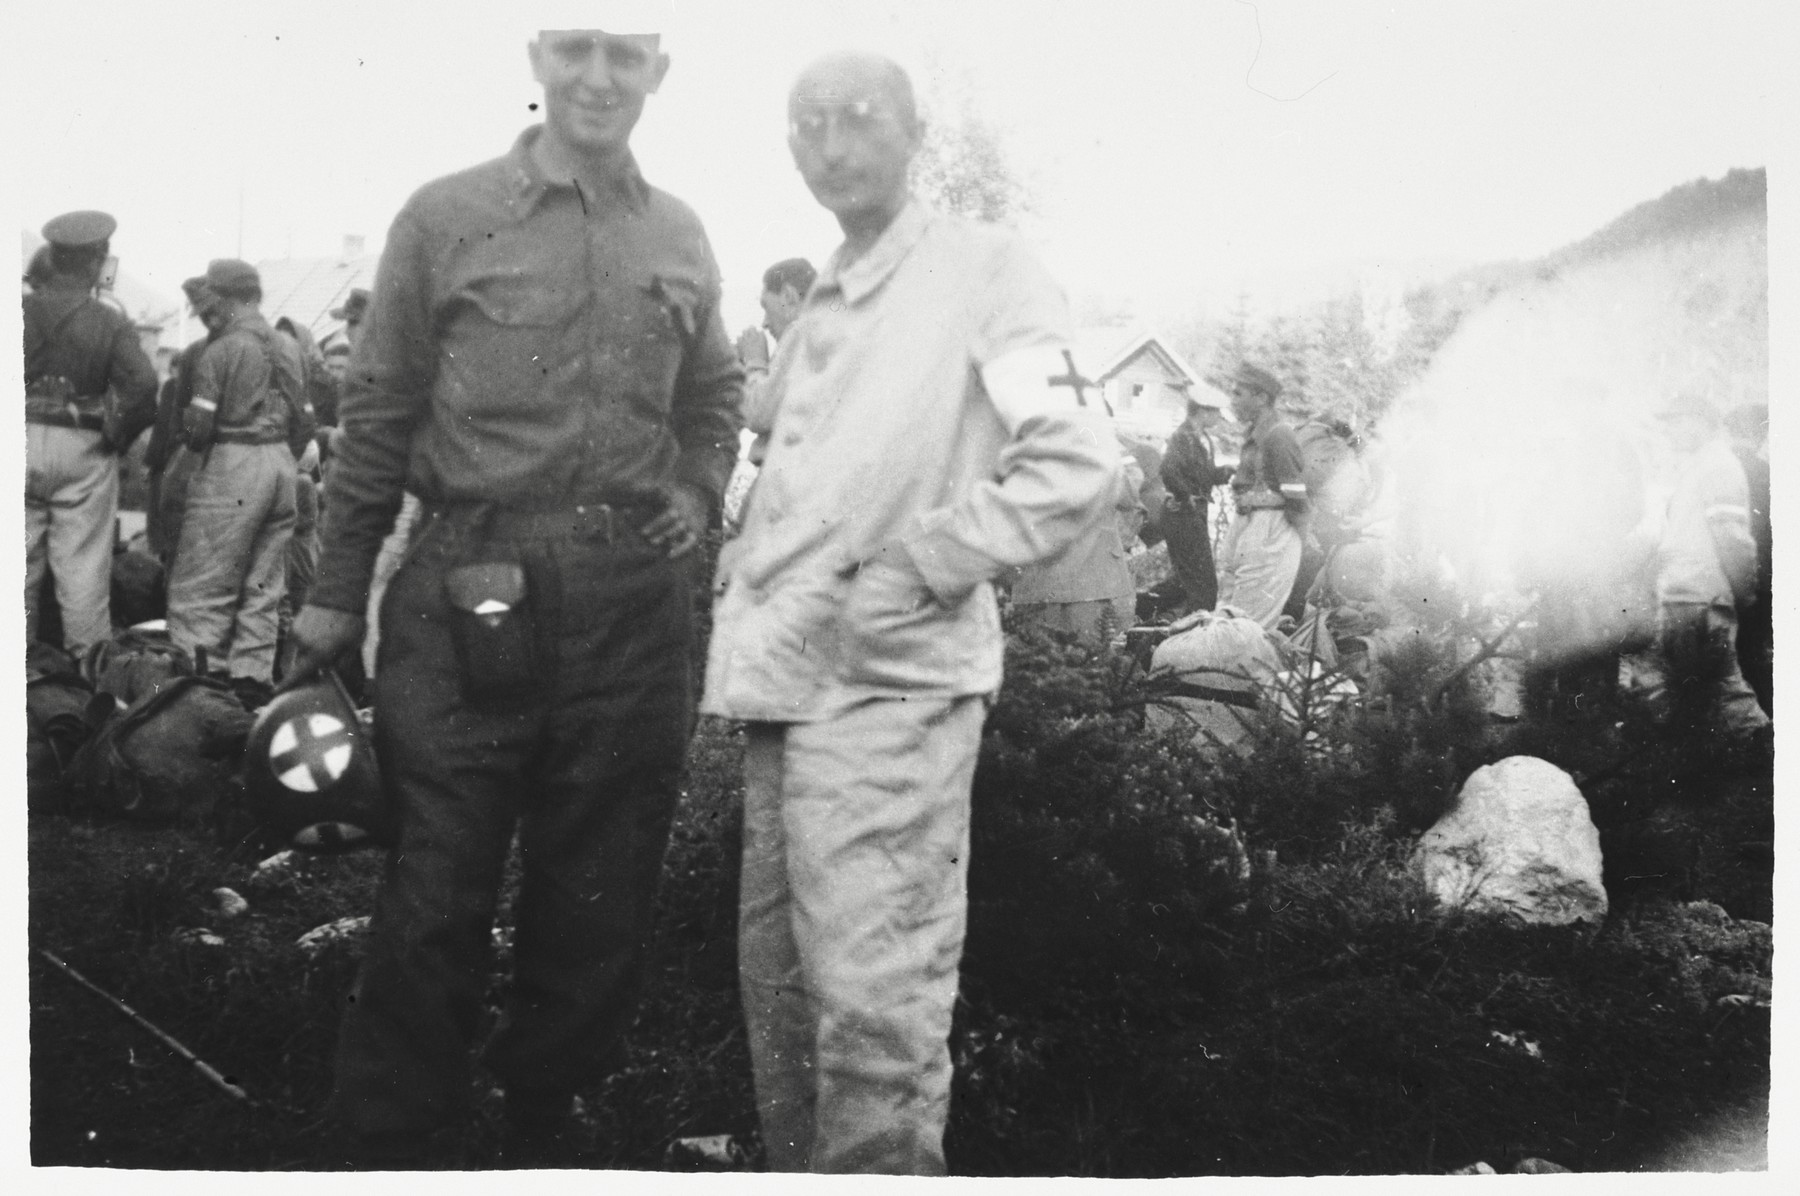 An American serviceman poses with the chief medical officer of a facility in Garmisch-Partenkirchen which provides medical care to survivors.  The chief medical officer is himself a liberated concentration camp prisoner.  The serviceman is Raymond Simokins.